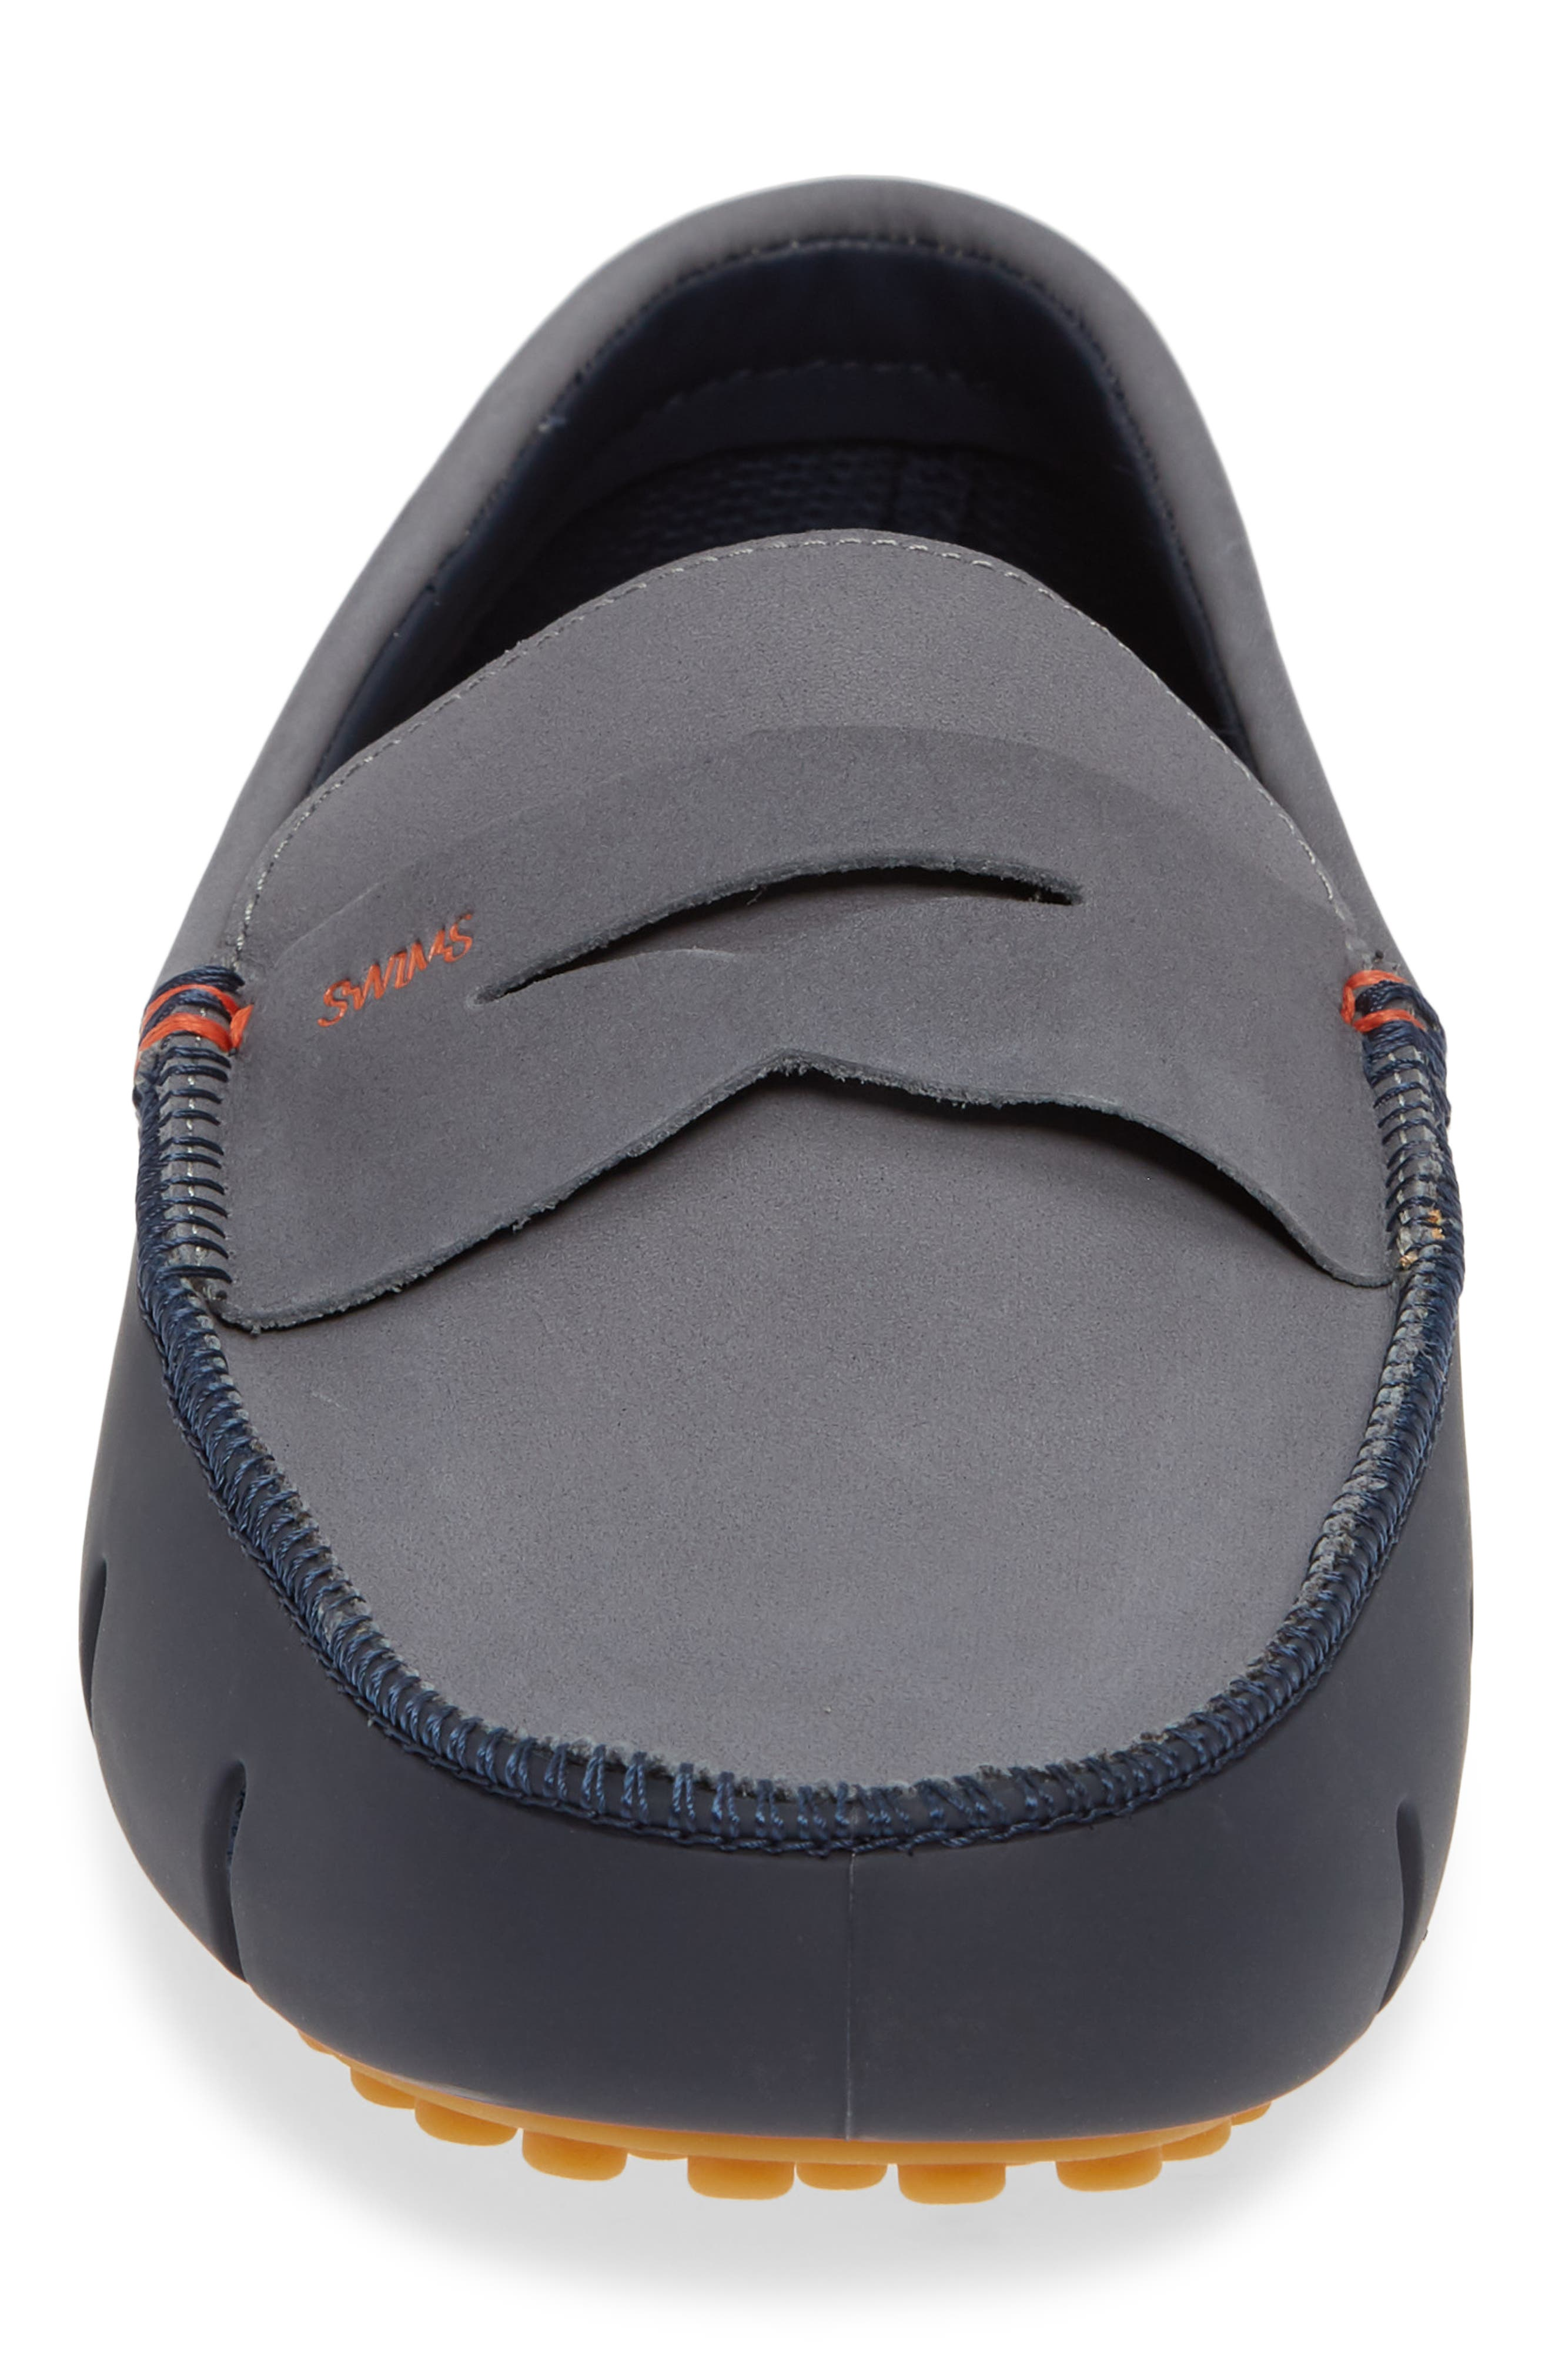 Lux Penny Loafer,                             Alternate thumbnail 4, color,                             NAVY/ GRAY/ GUM